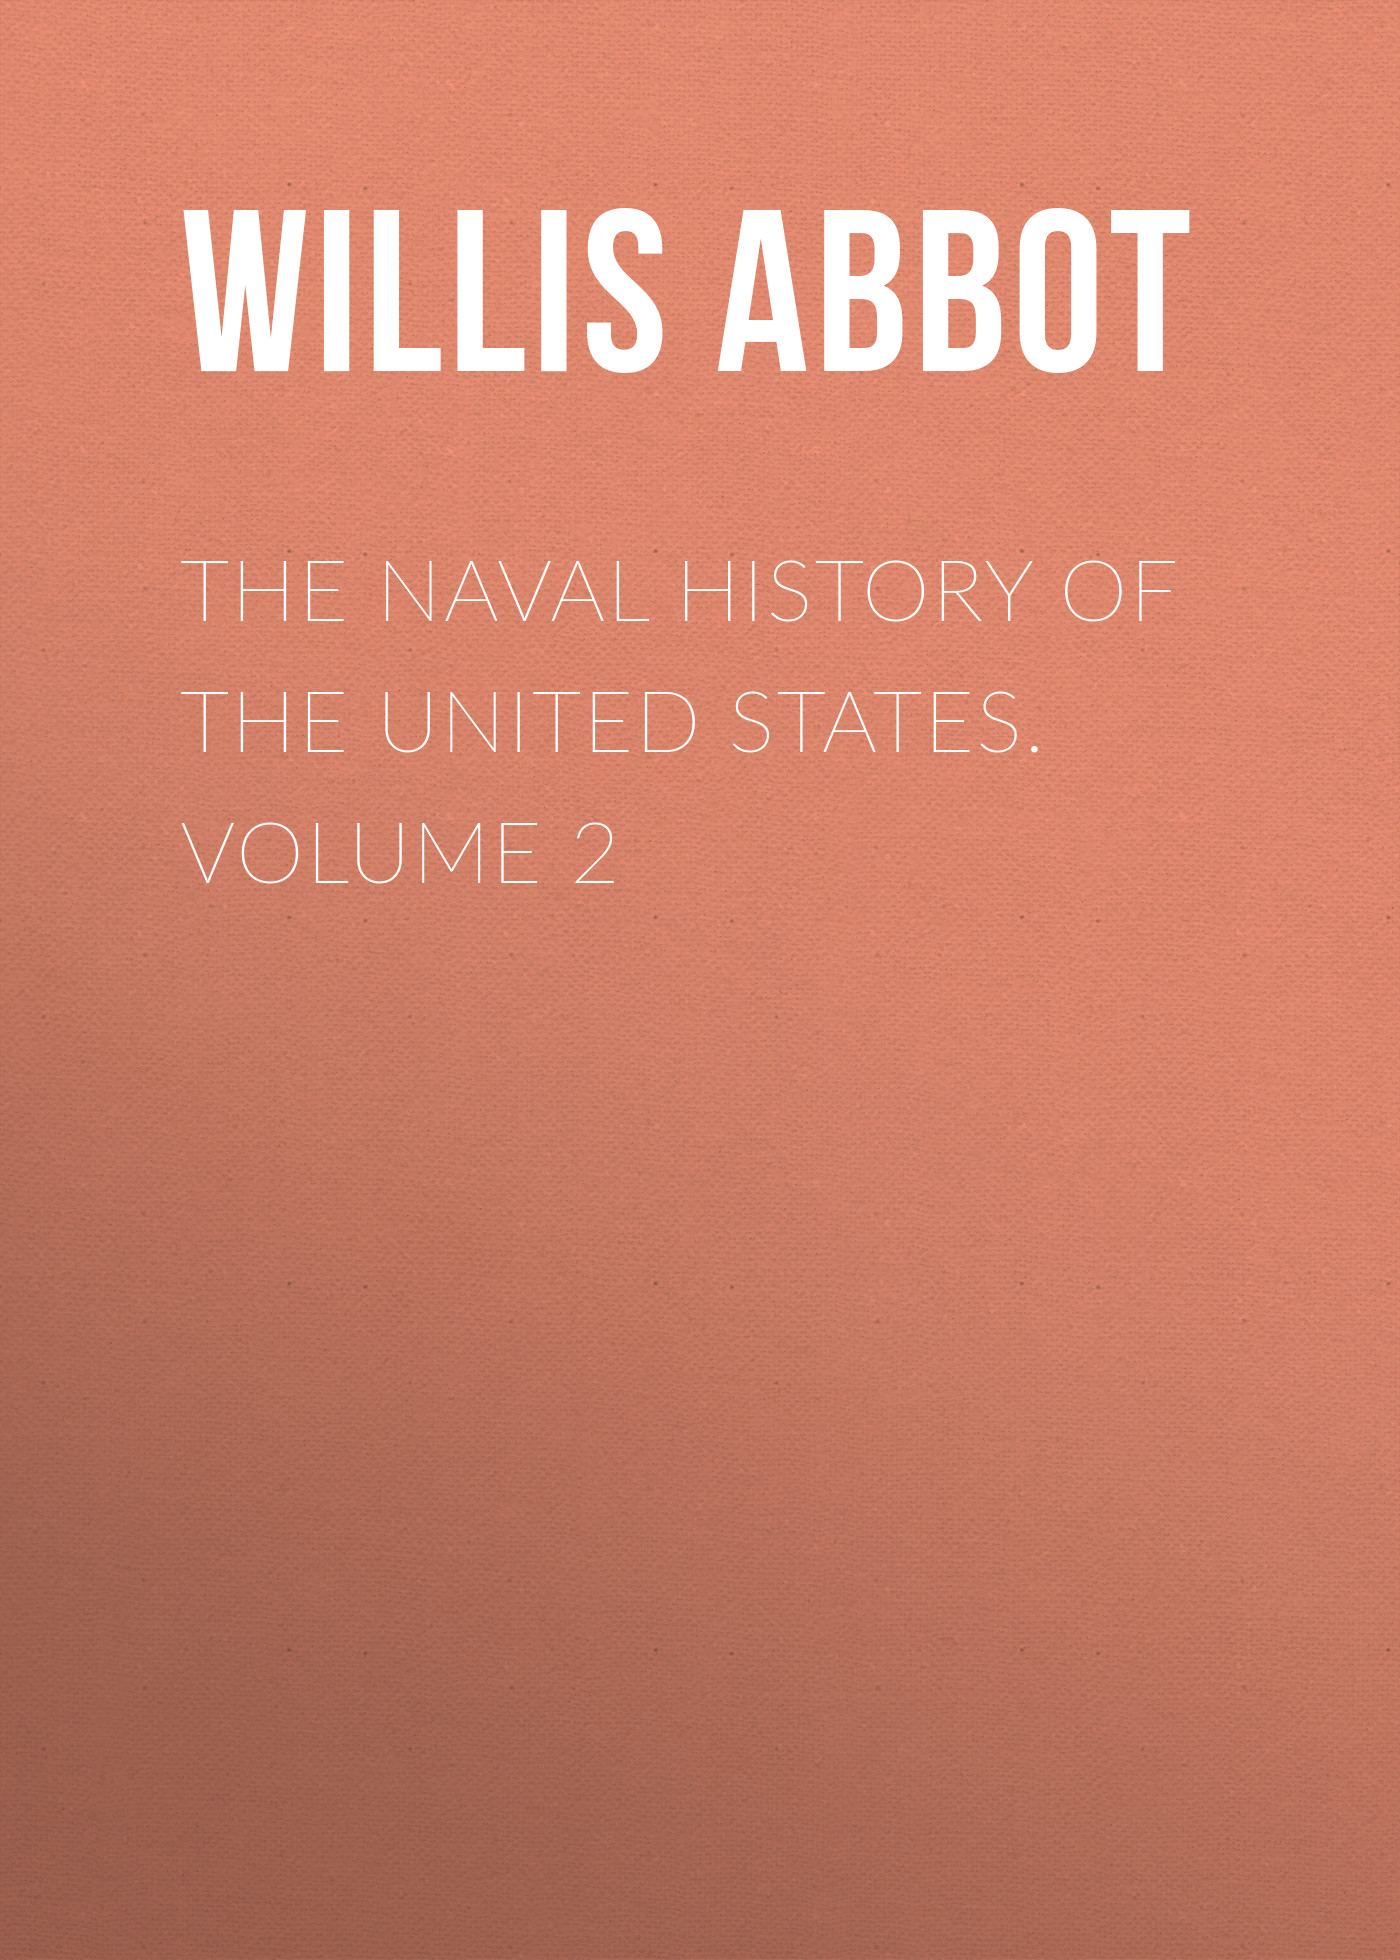 Abbot Willis John The Naval History of the United States. Volume 2 hubert howe bancroft the native races [of the pacific states] volume 5 primitive history